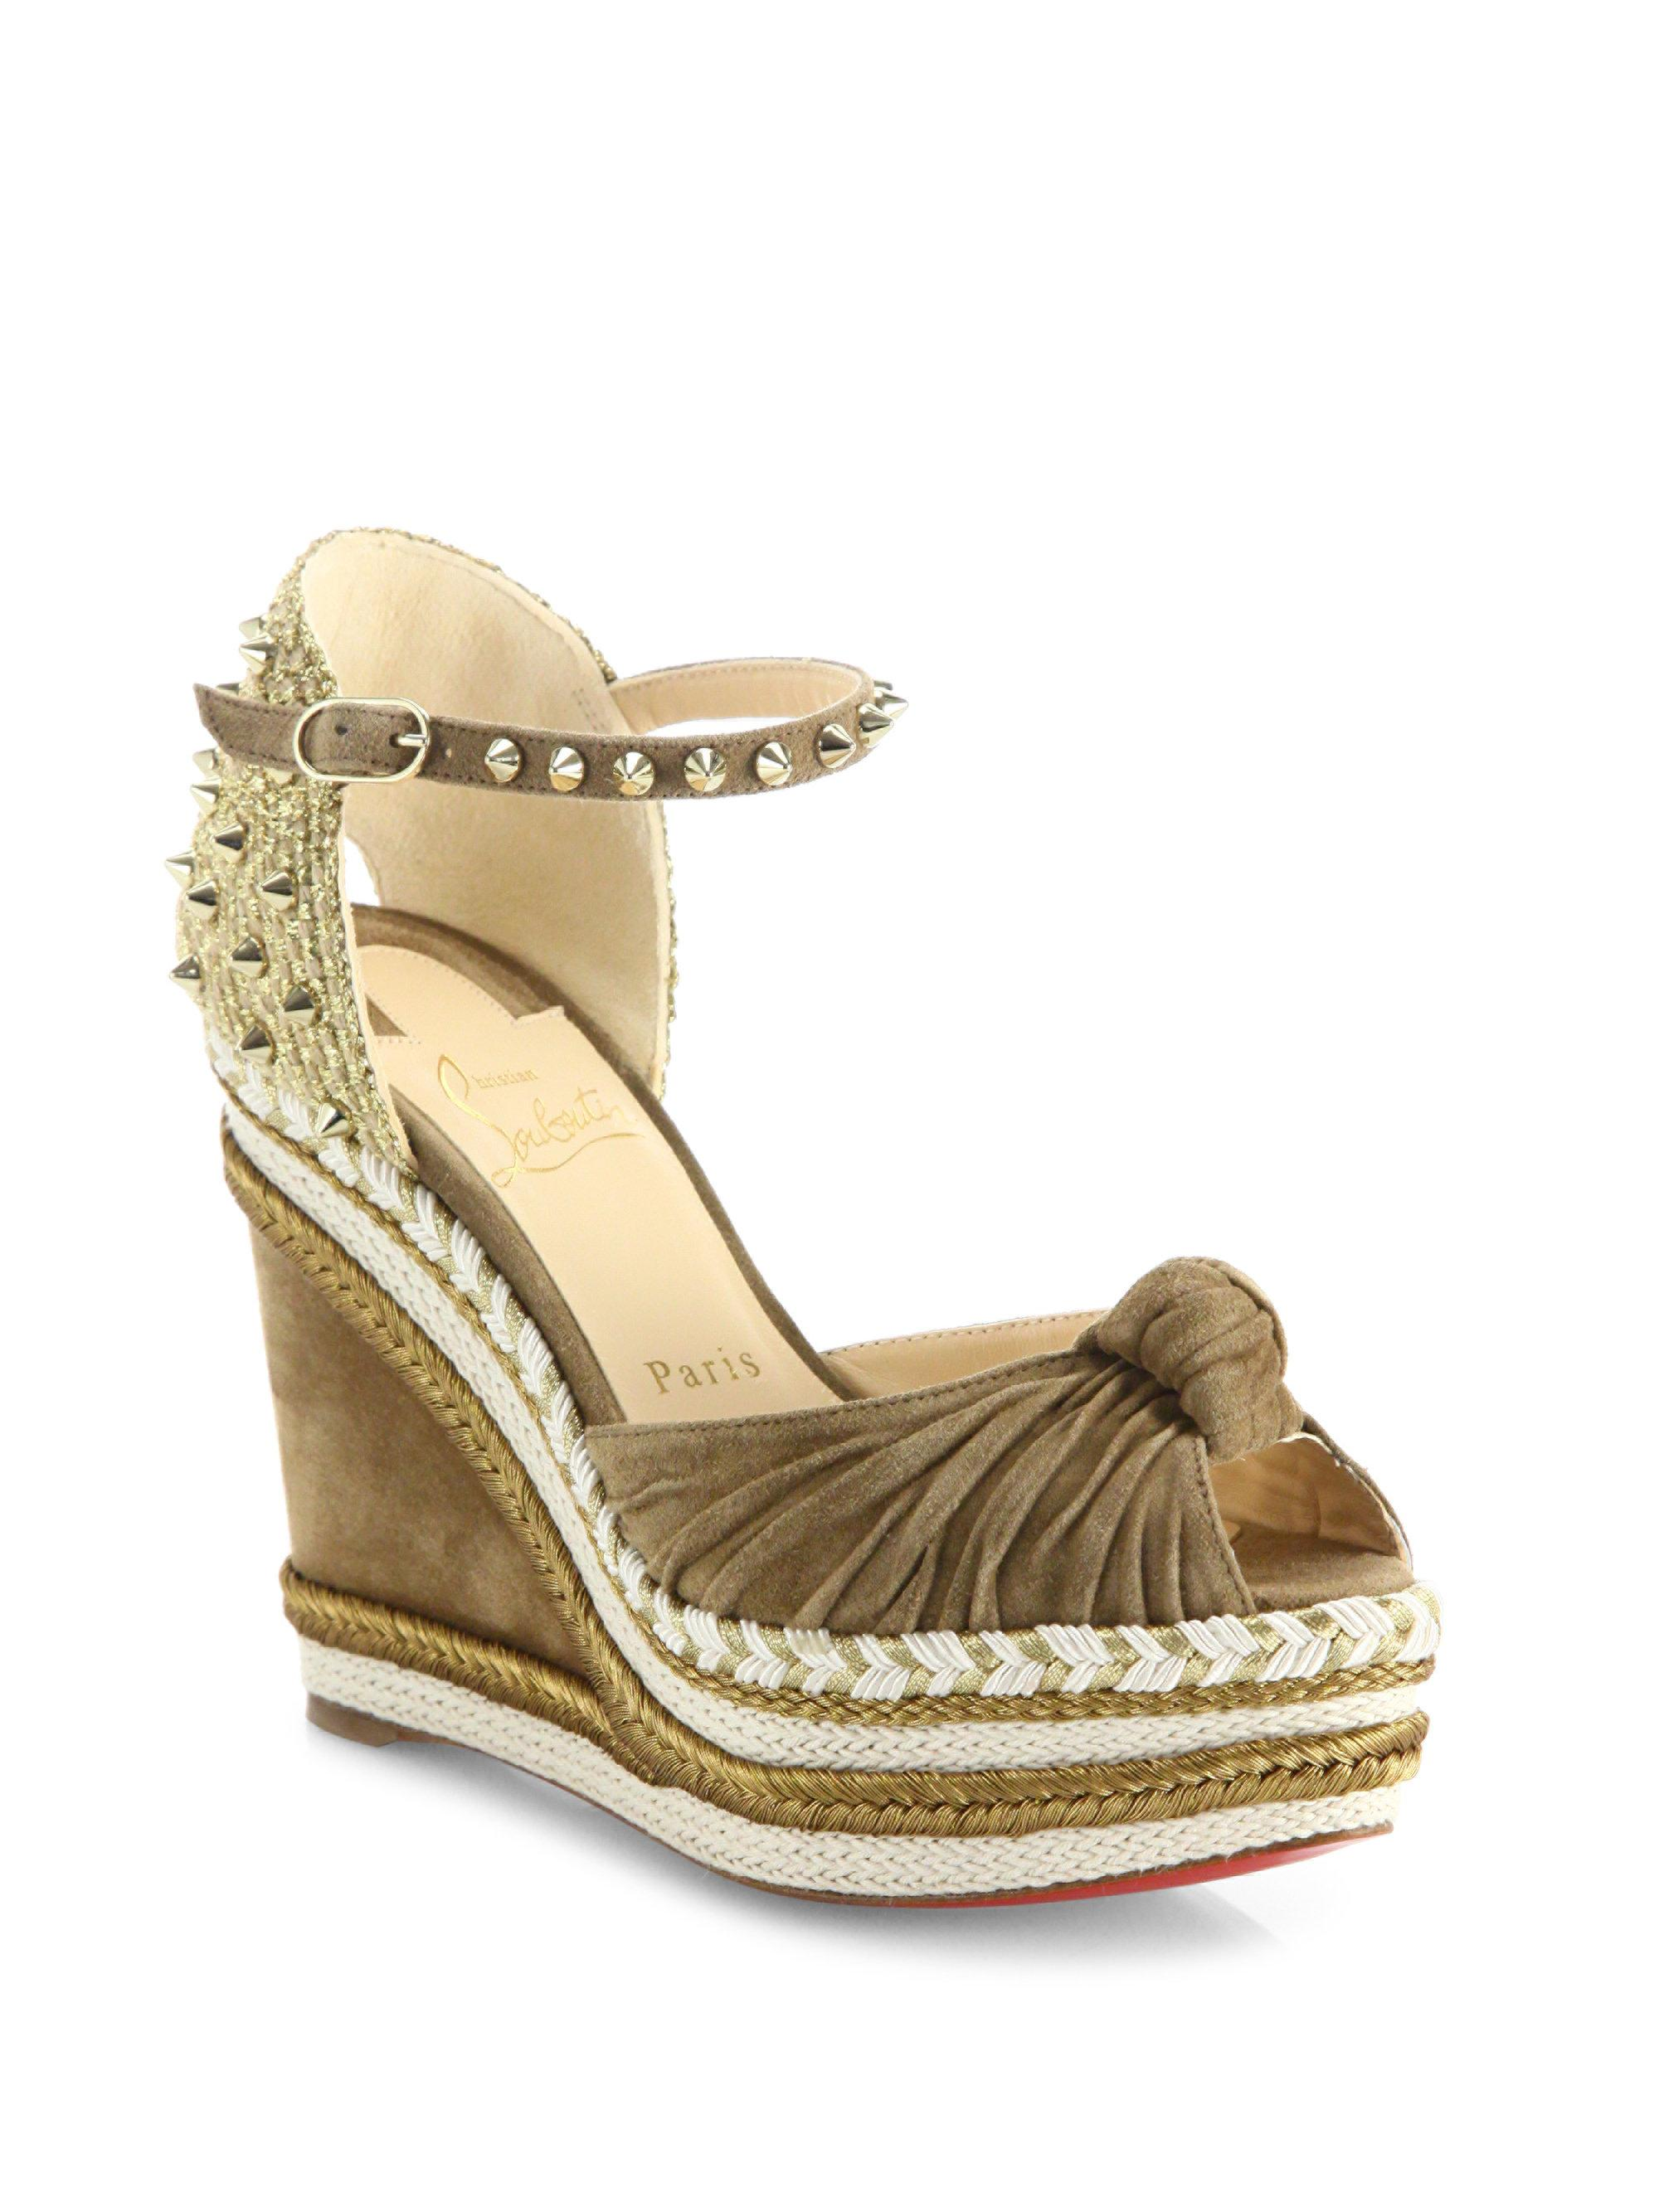 16dfa045d6a4 Lyst - Christian Louboutin Madcarina 120 Knotted Suede Espadrille ...